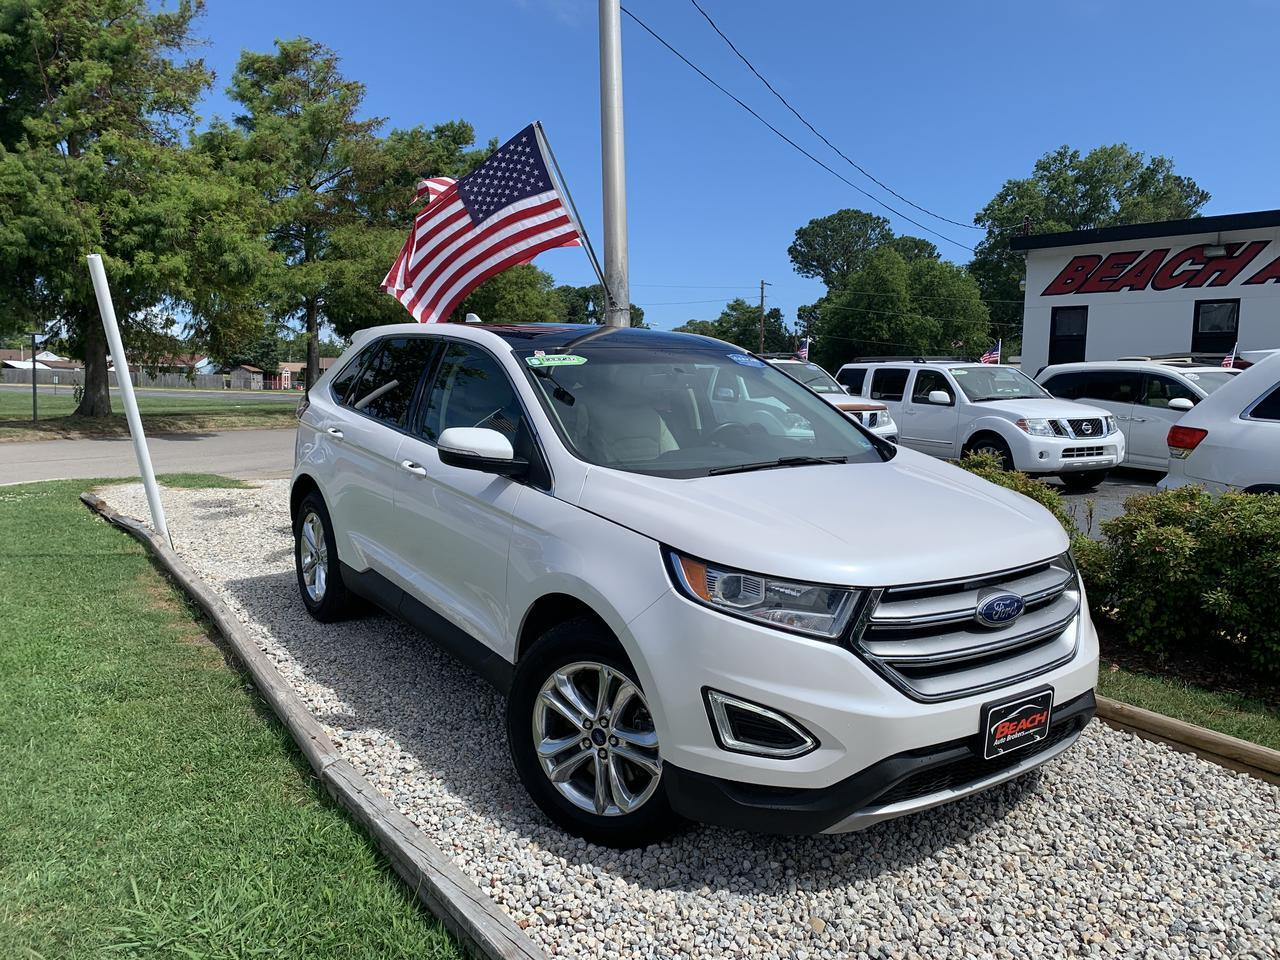 2015 FORD EDGE SEL, WARRANTY, LEATHER, PANORAMIC SUNROOF, HEATED SEATS, BACKUP CAM, BLUETOOTH, 1 OWNER! Norfolk VA